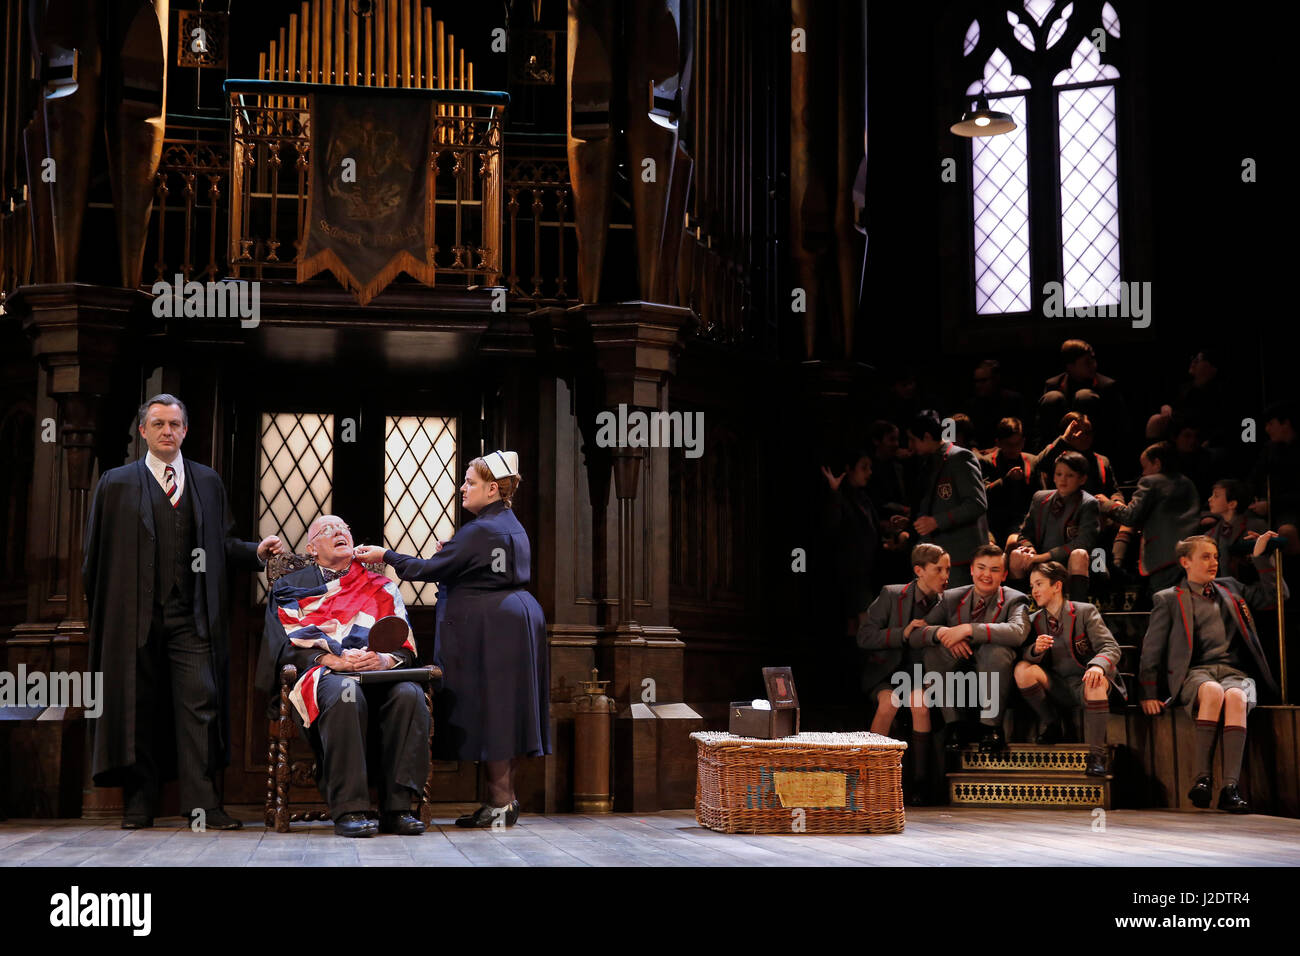 The cast perform in Alan Bennett's play 'Forty Years On' at the Chichetser Festival Theatre in Chichetser, - Stock Image